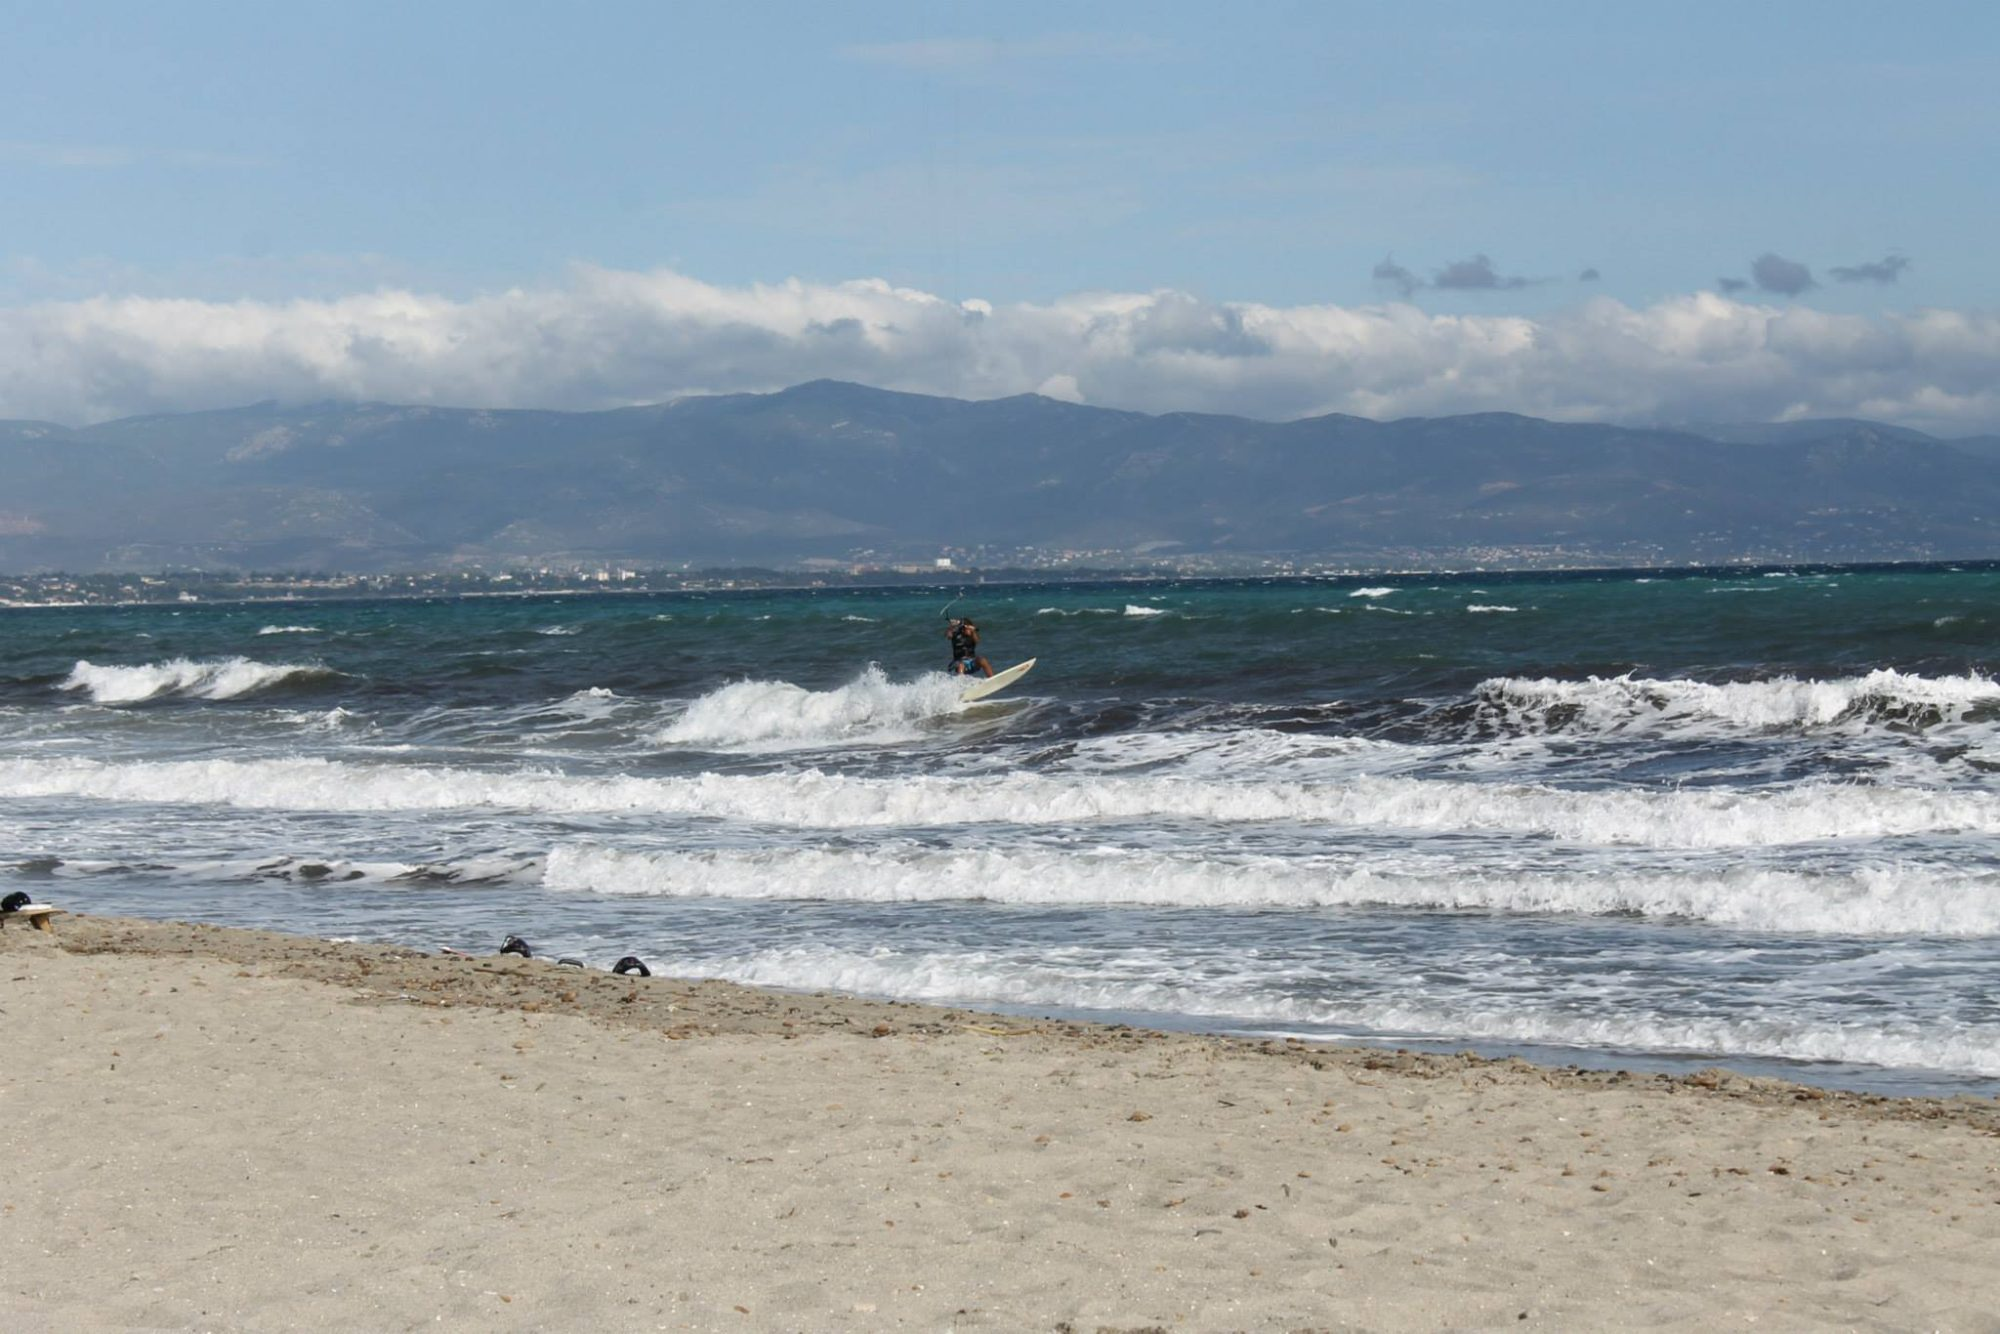 Kitesurfing Poetto Cagliari. Wave Session at Poetto Beach